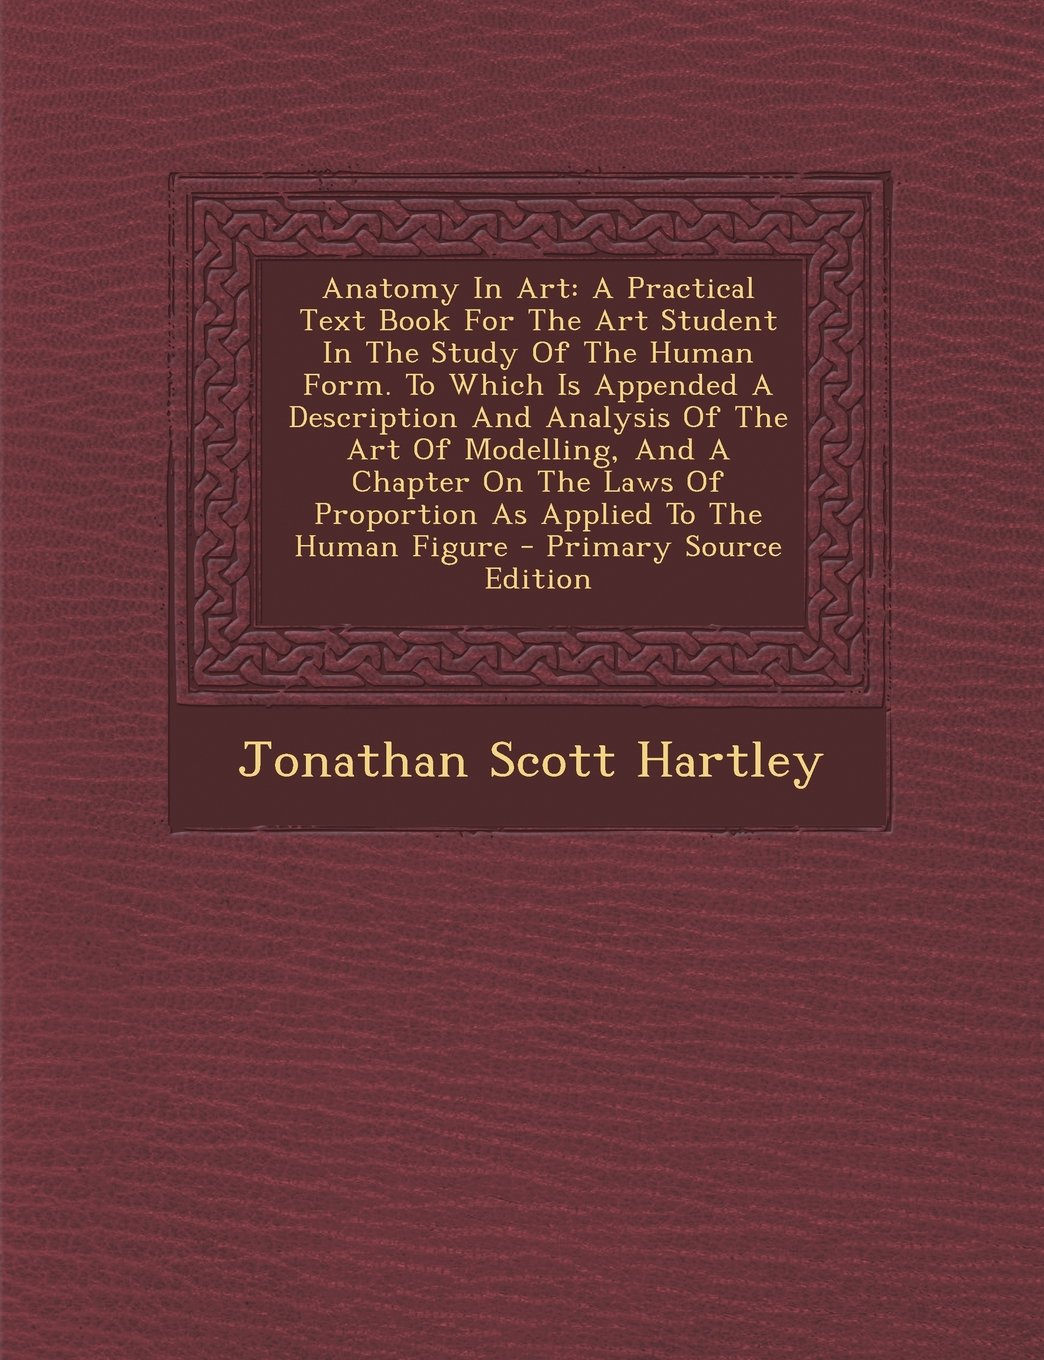 Anatomy In Art A Practical Text Book For The Art Student In The